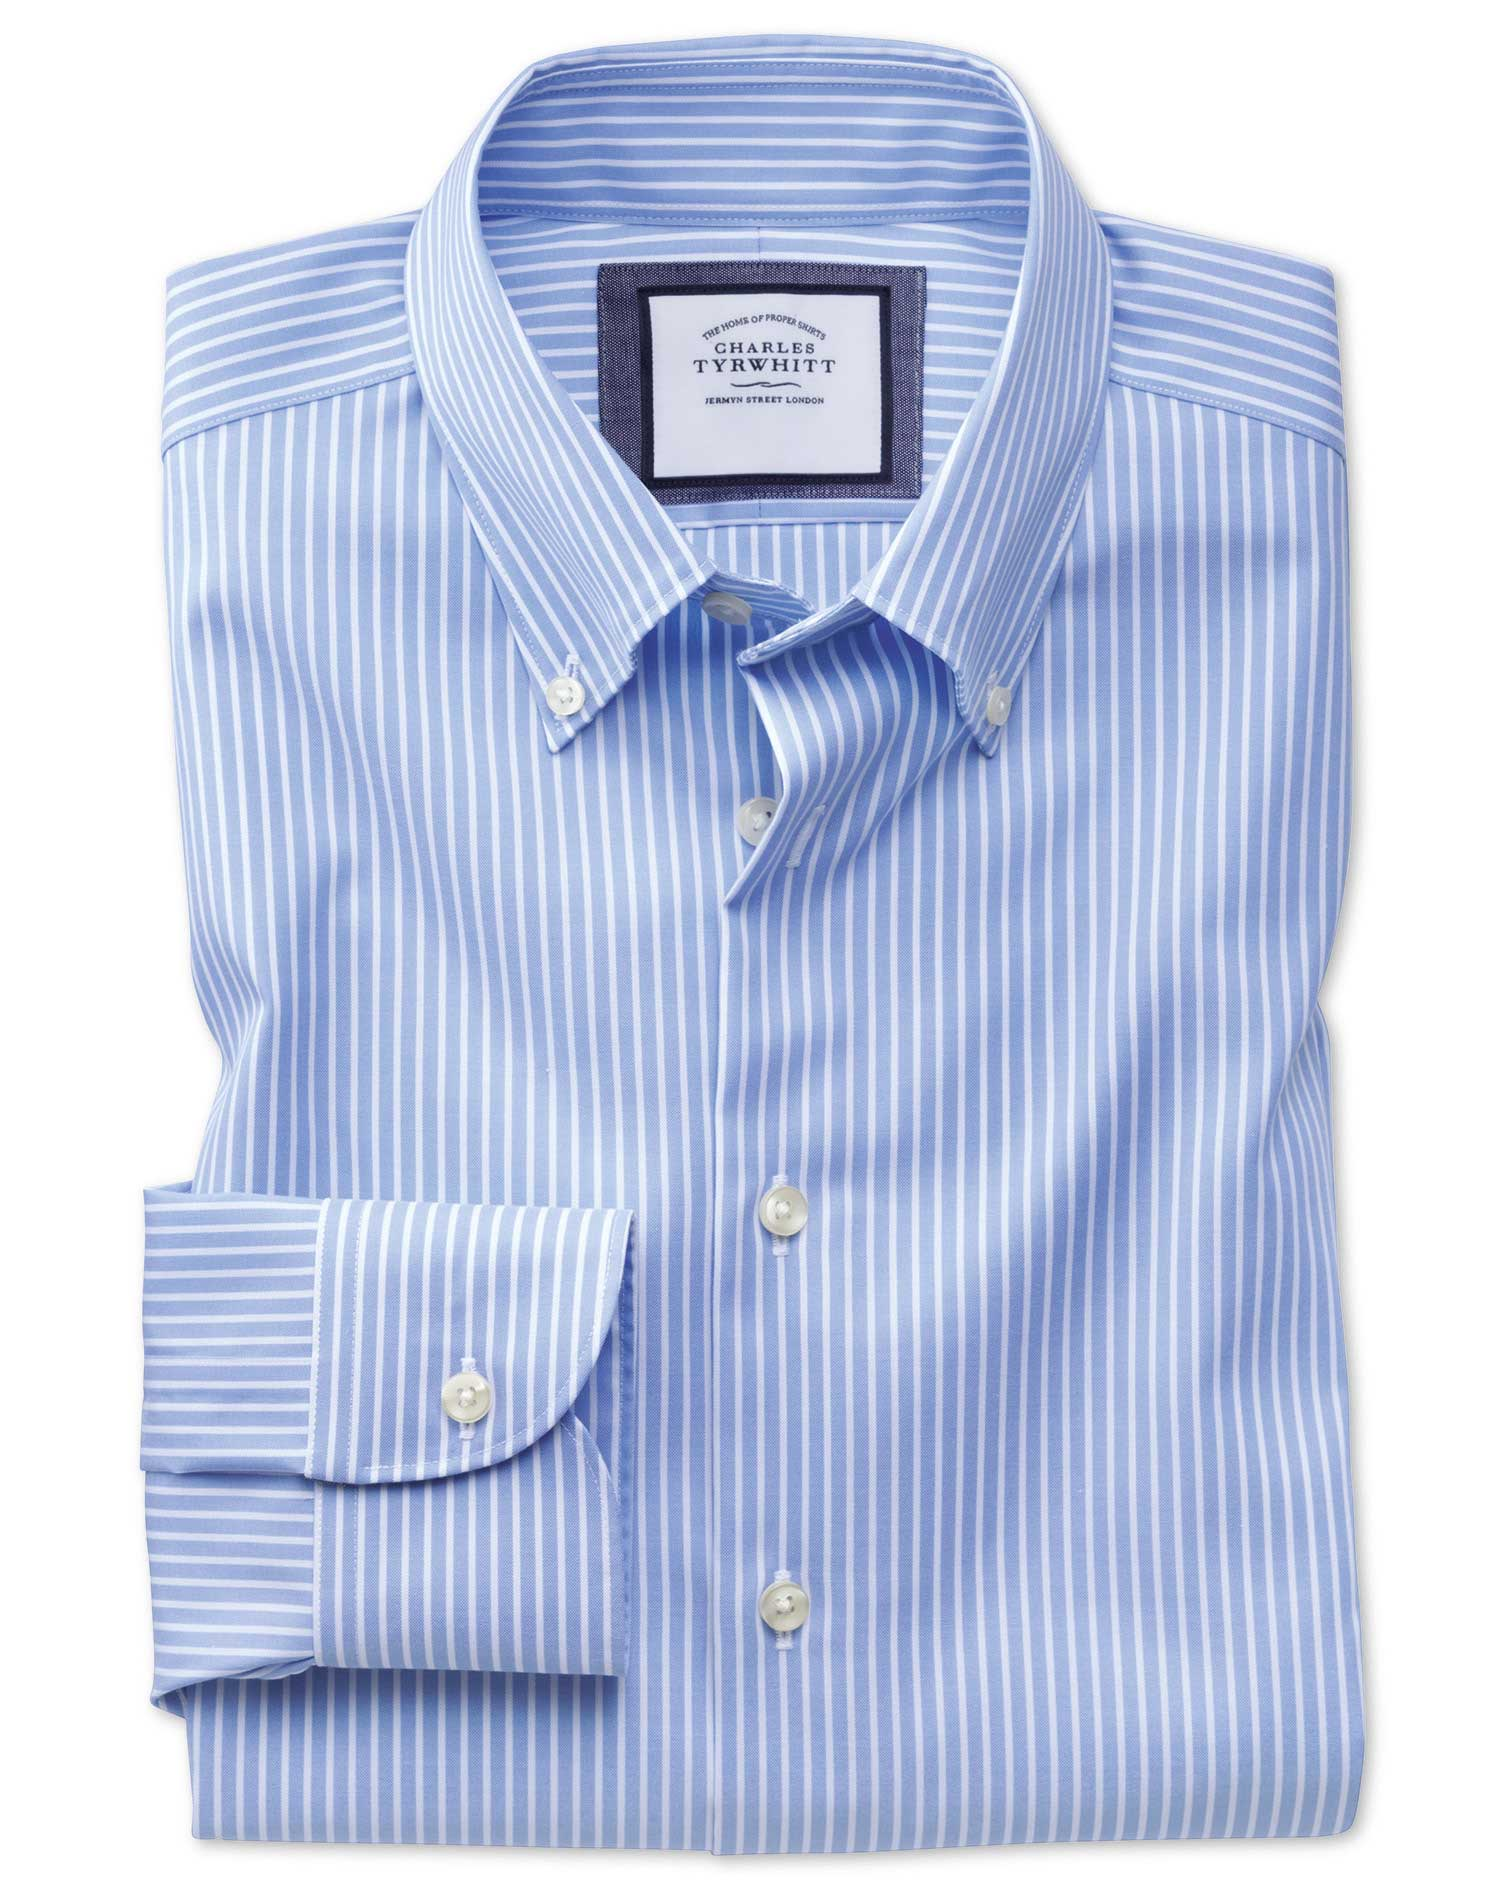 Slim Fit Business Casual Non Iron Button-Down Stripe Sky and White Cotton Formal Shirt Single Cuff S